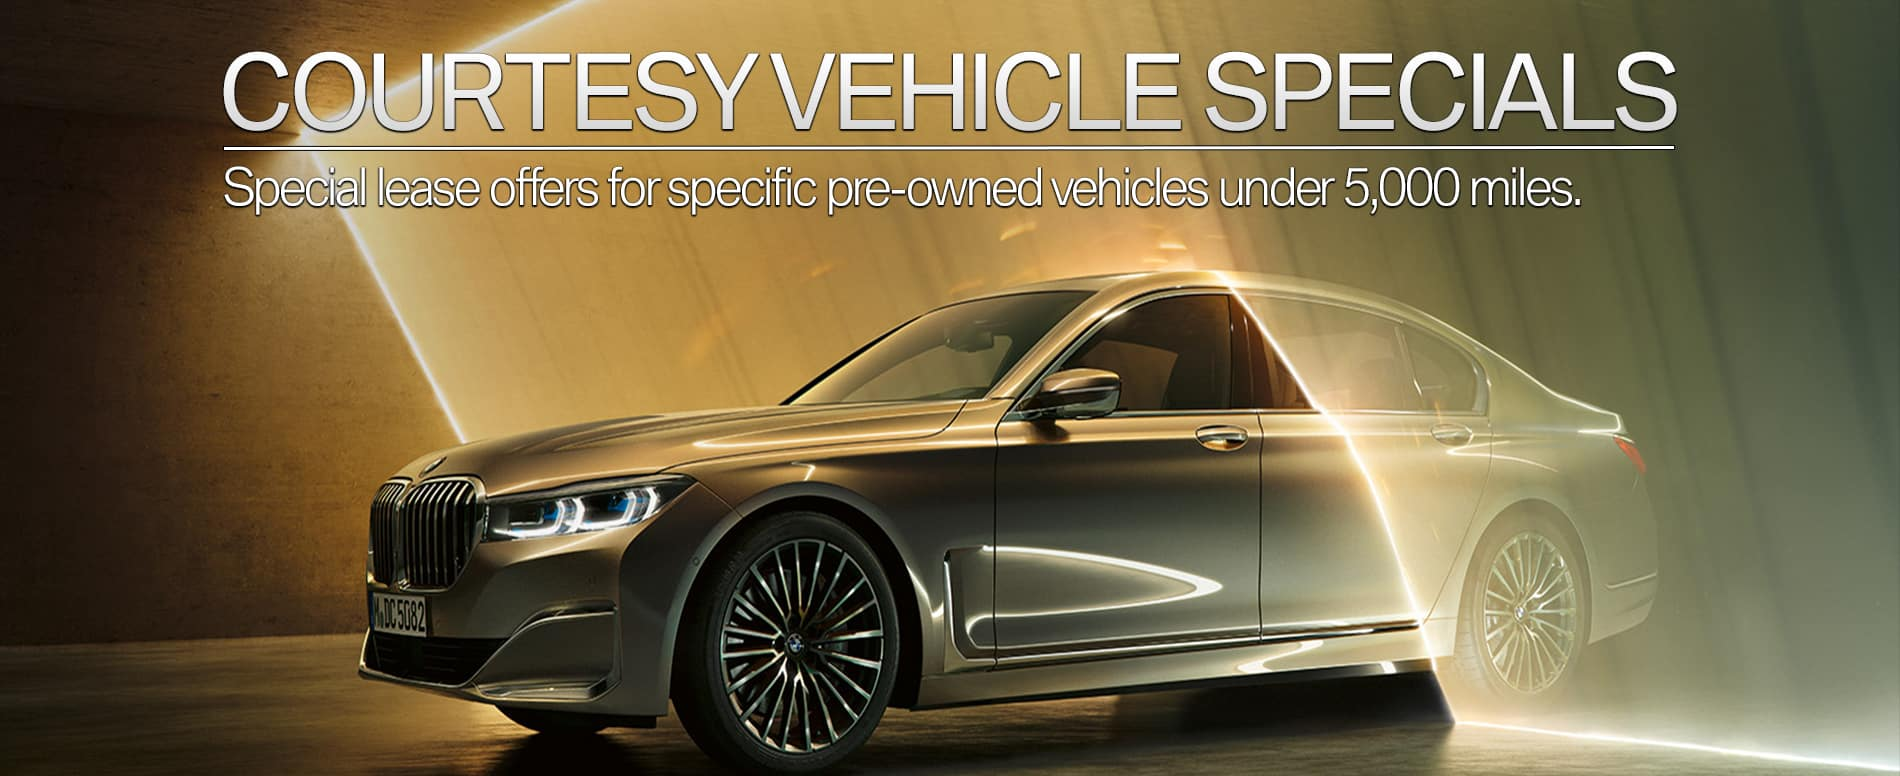 BMW Service Loaner Lease Specials and Offers - Darien, CT